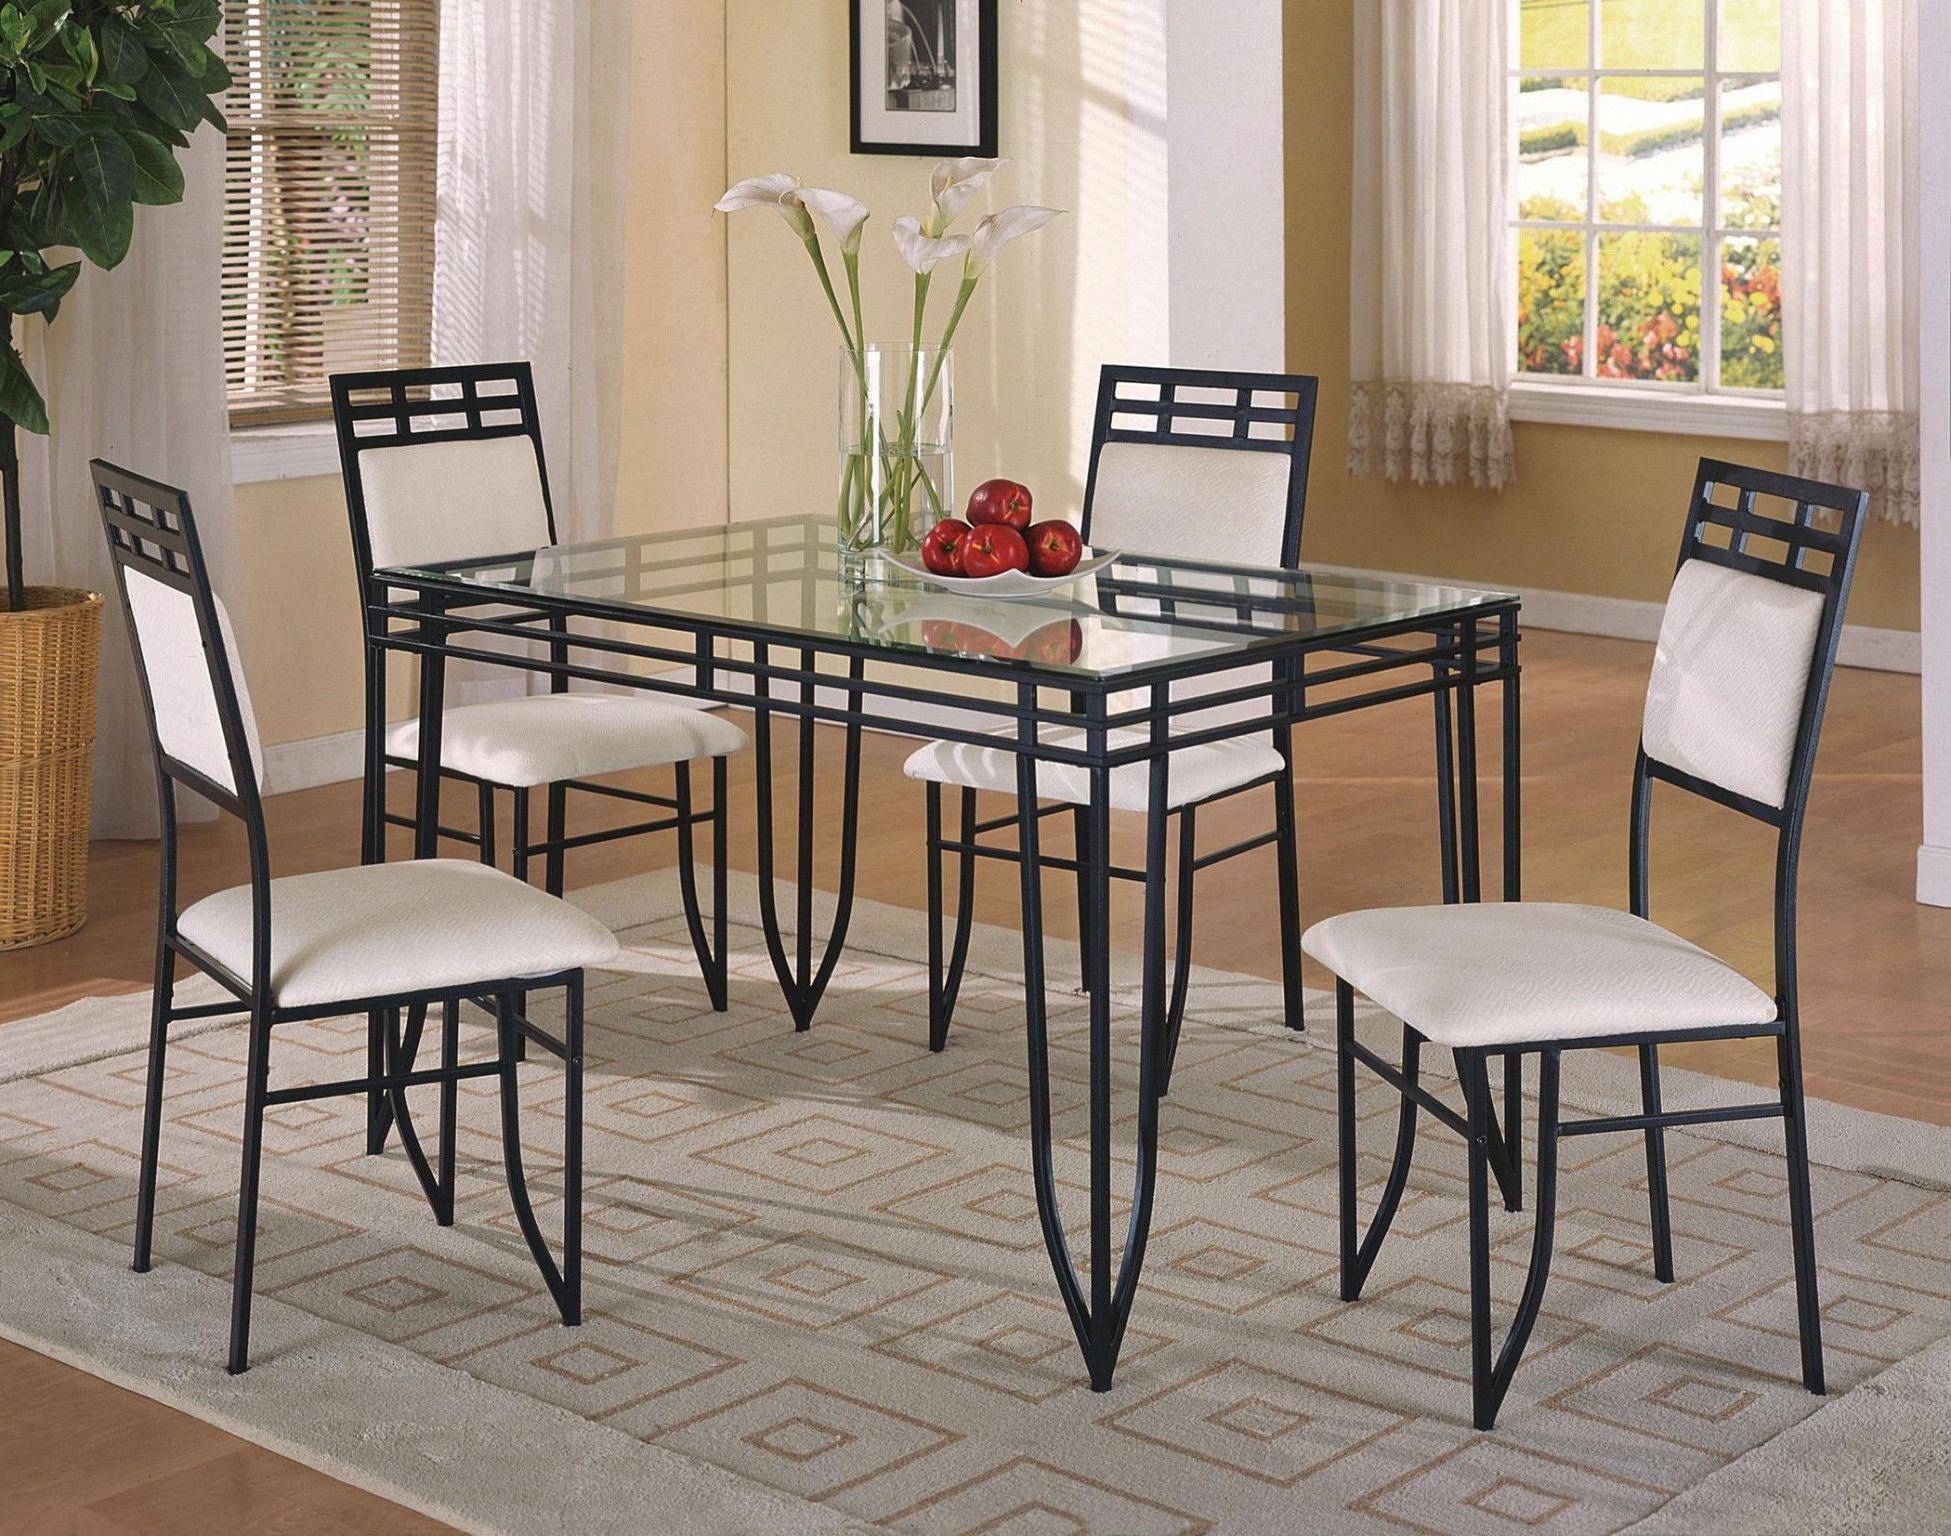 Home Design Ideas Regarding Middleport 5 Piece Dining Sets (View 6 of 25)